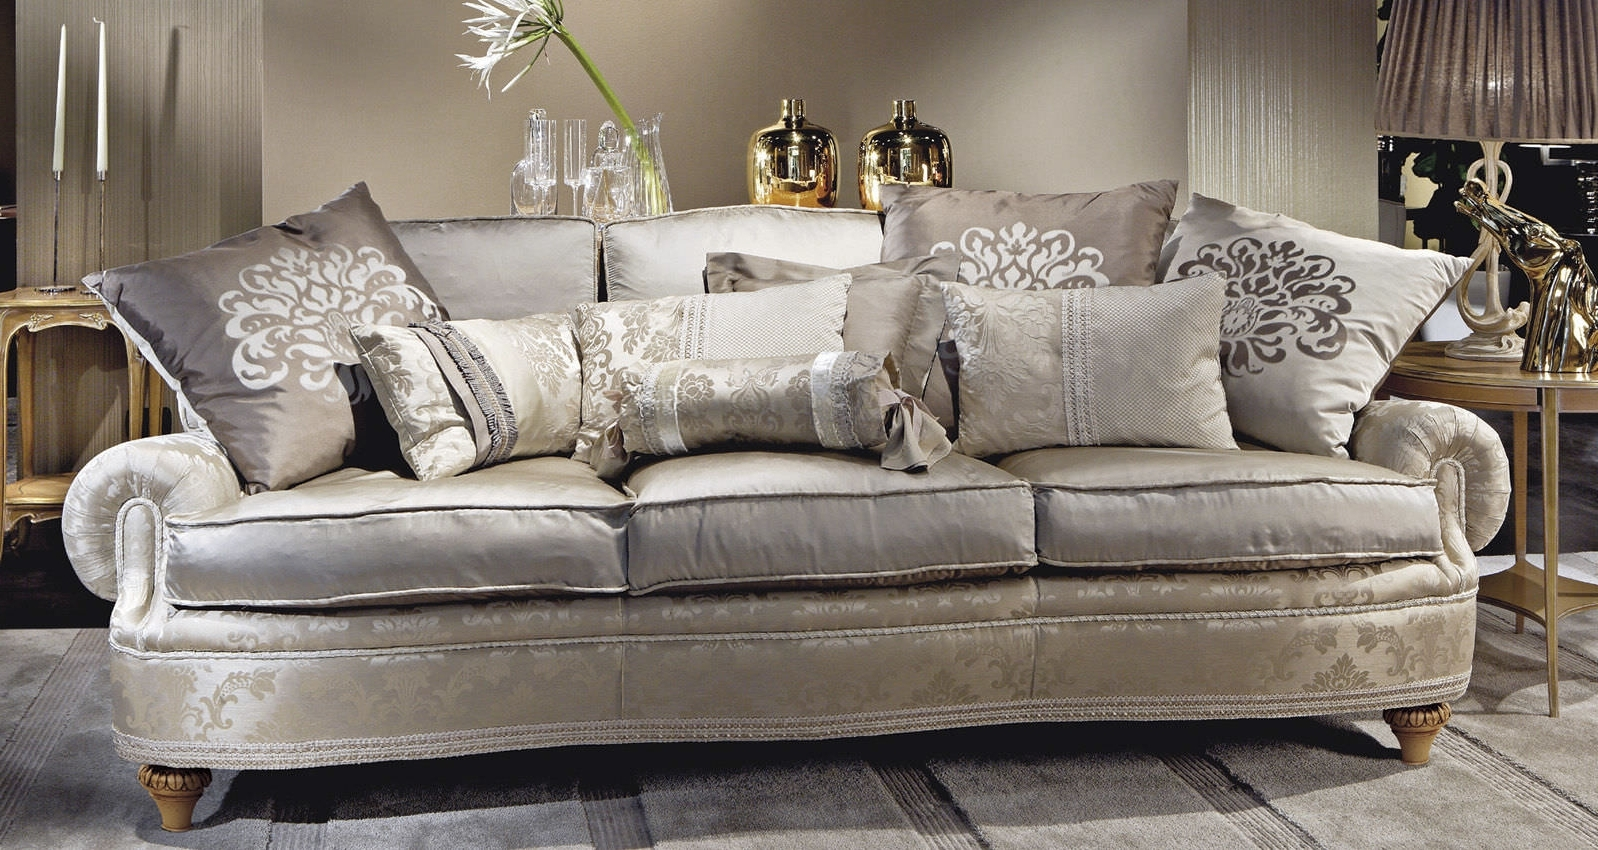 Epic Traditional Sofas 60 For Modern Sofa Inspiration With Regarding Well Known Traditional Sofas (View 4 of 20)